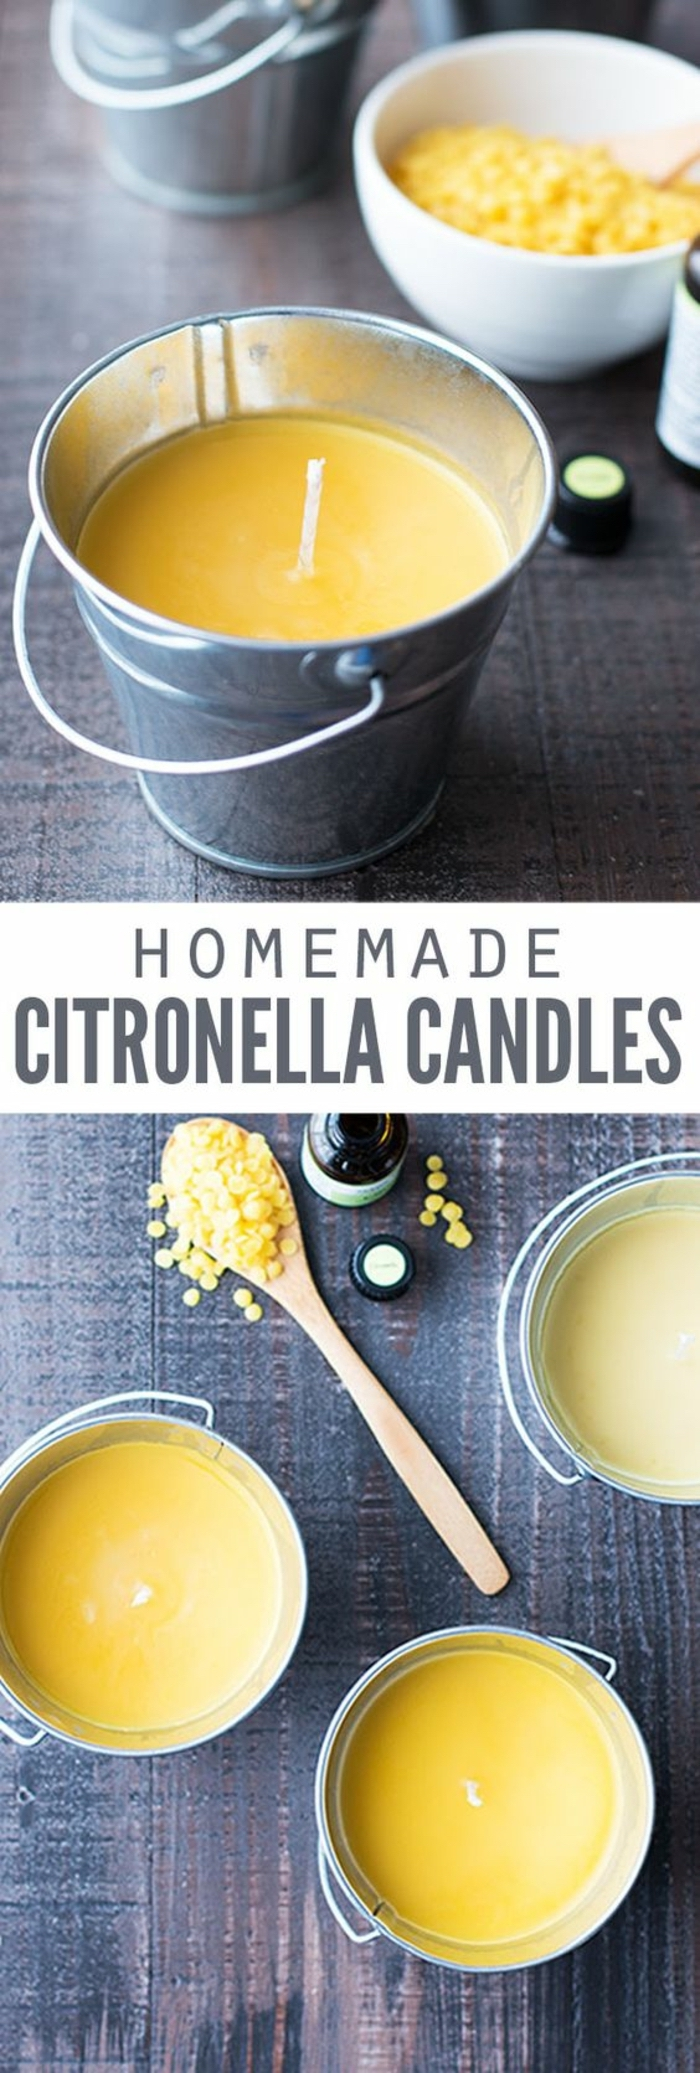 homemade citronella candles, how to make your own candles, yellow candle wax, inside a small bucket